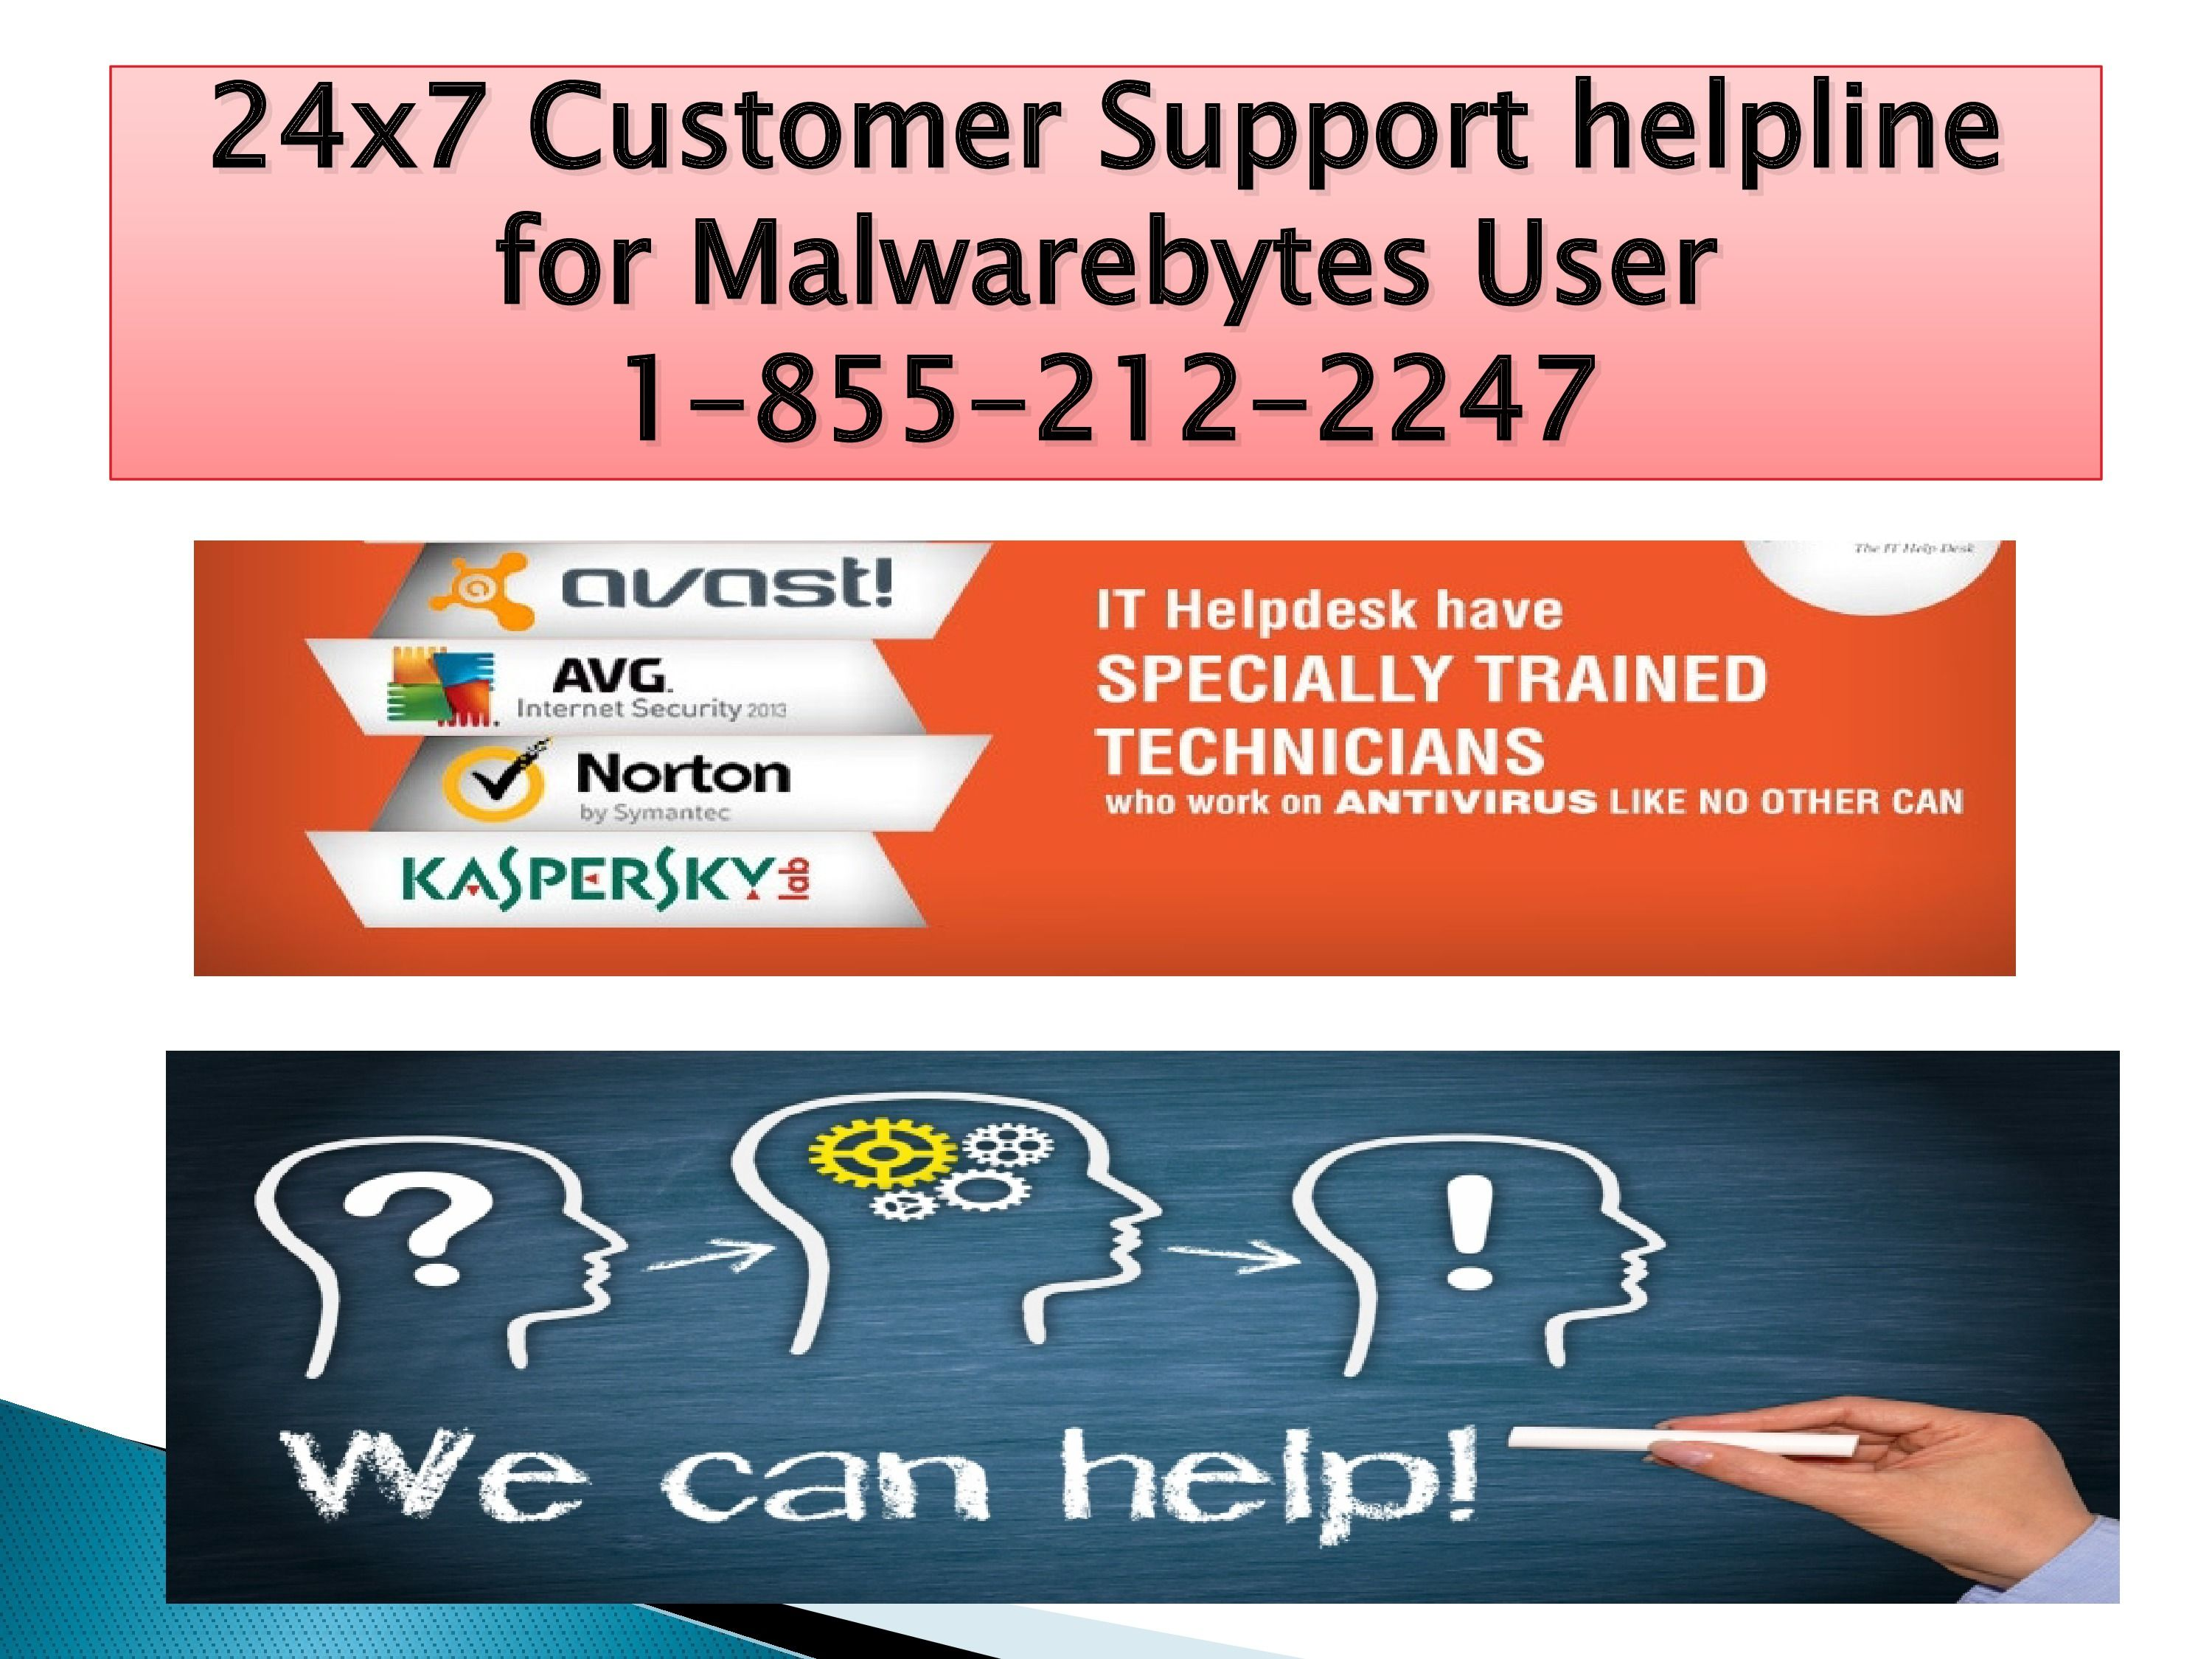 Tech Support and help for Malwarebytes user if they face